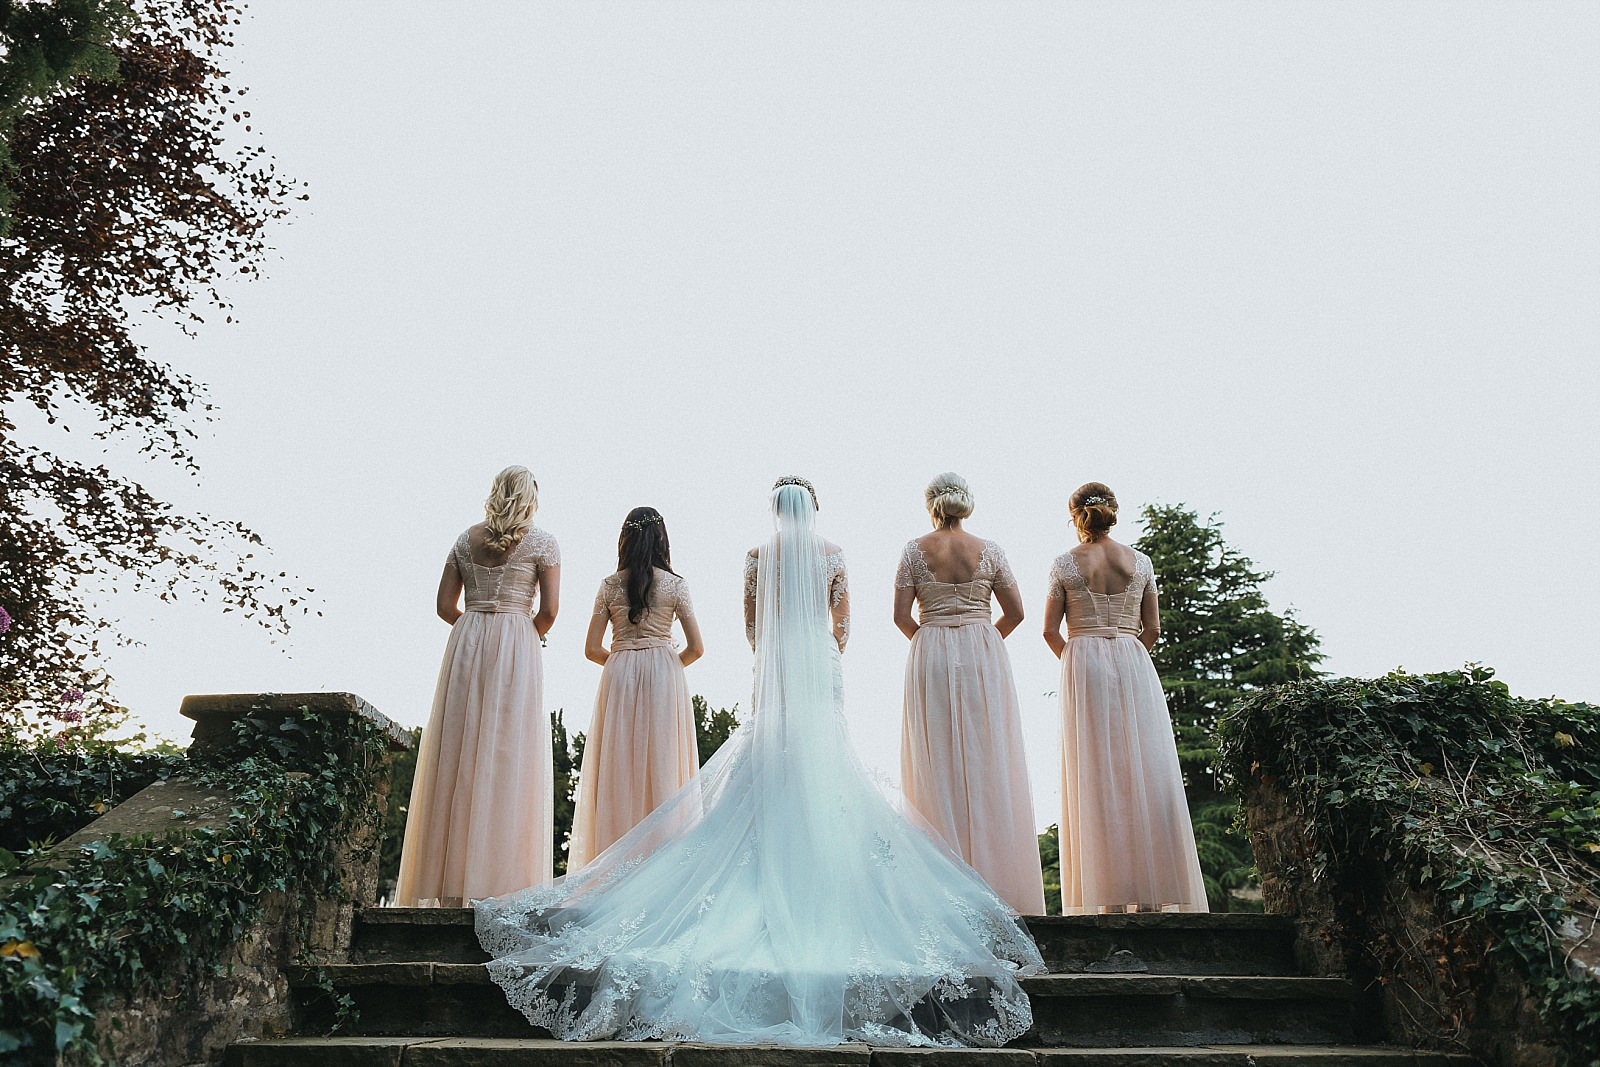 capturing the back of the bridesmaids